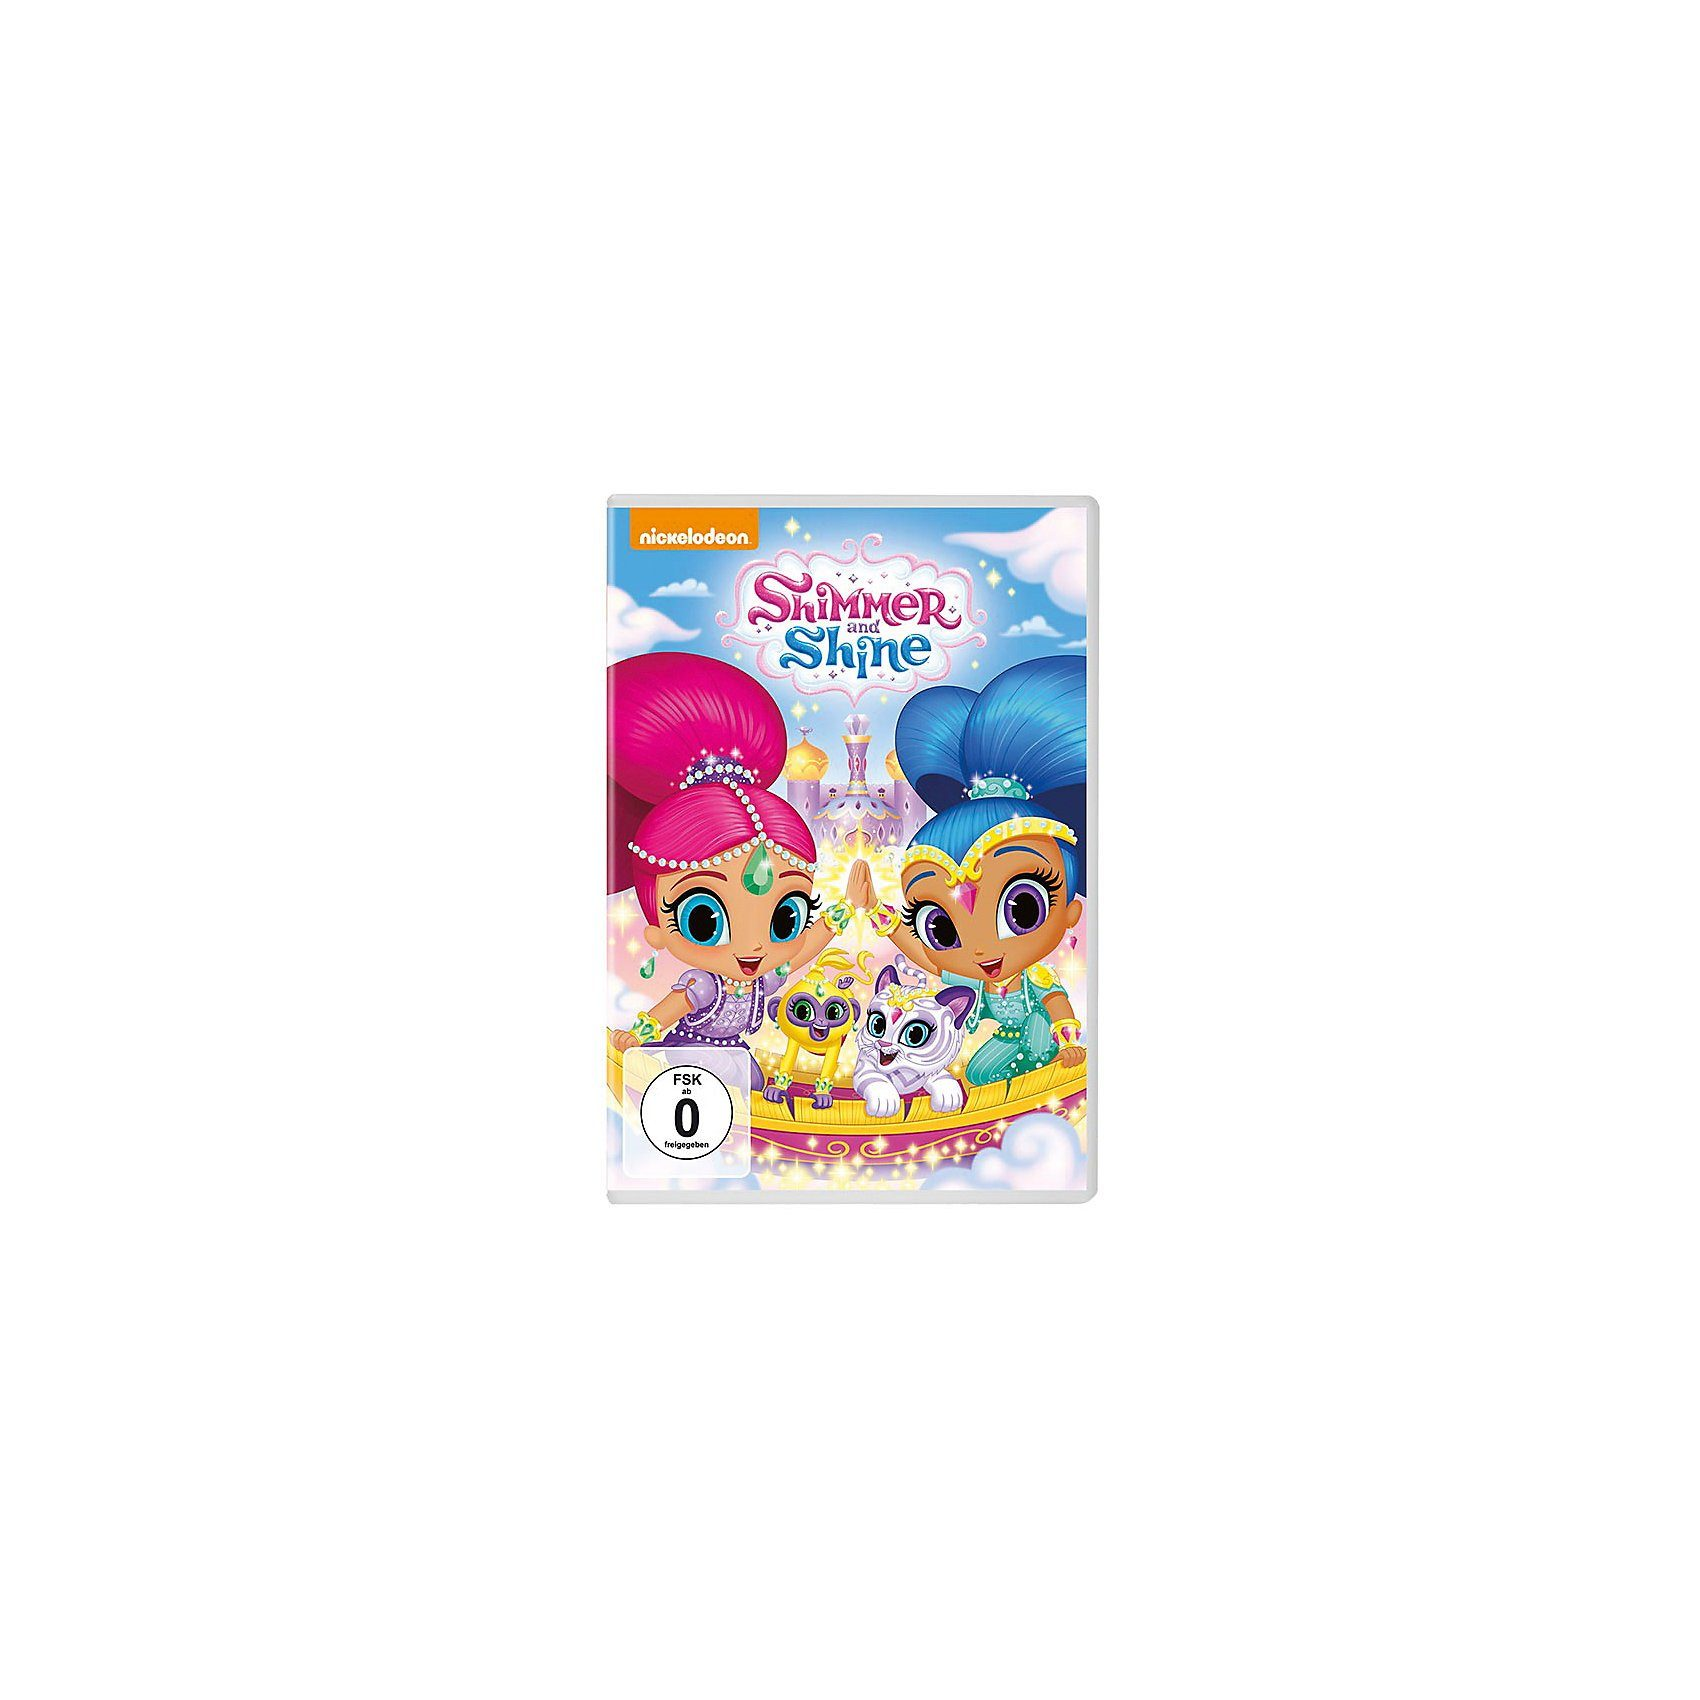 Universal DVD Shimmer and Shine